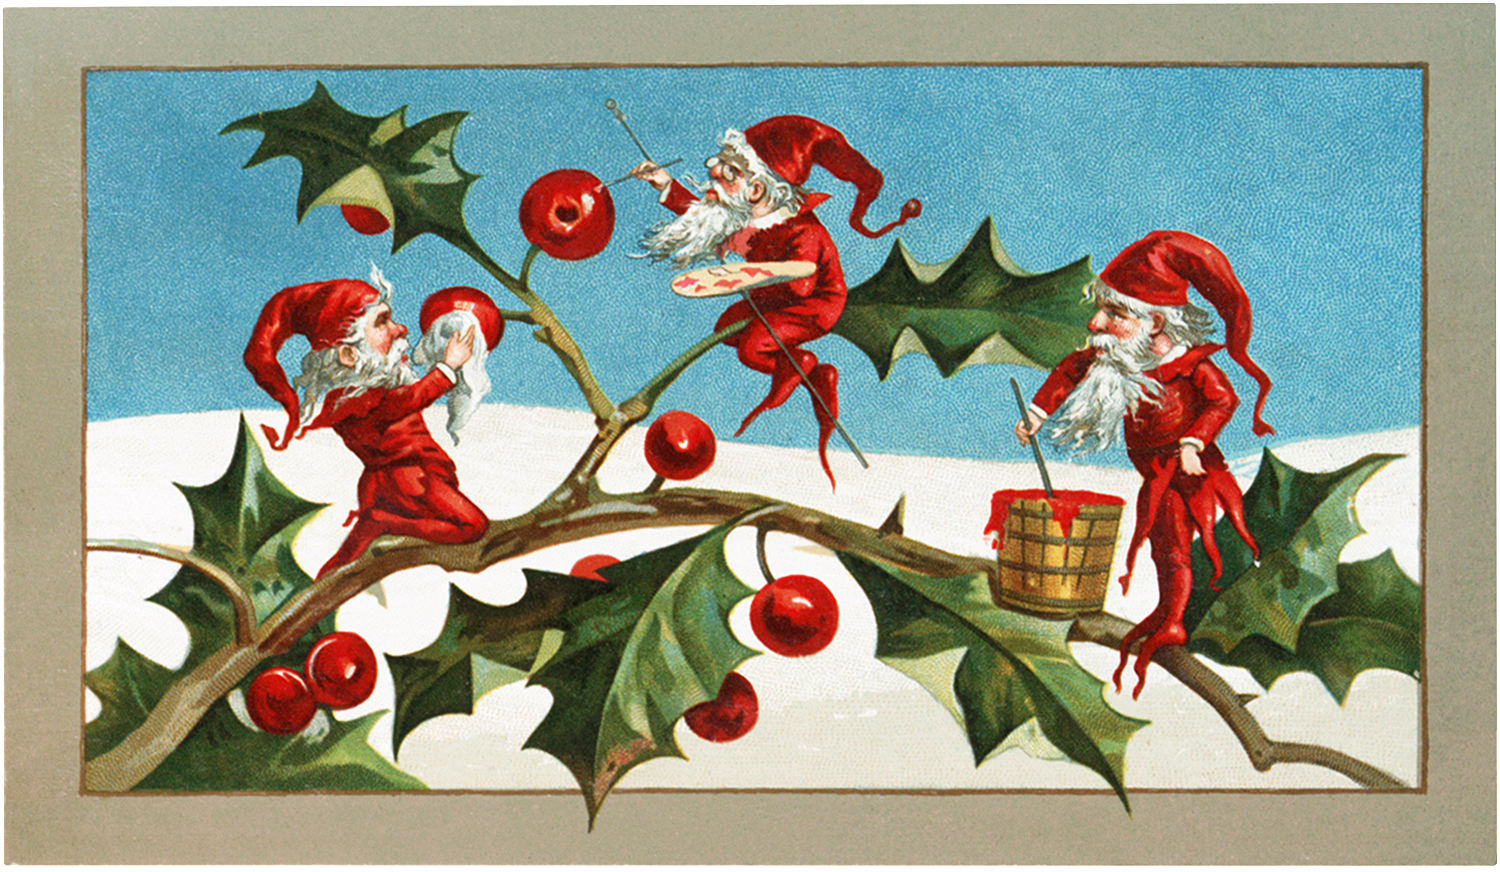 Vintage Elves with Holly Image